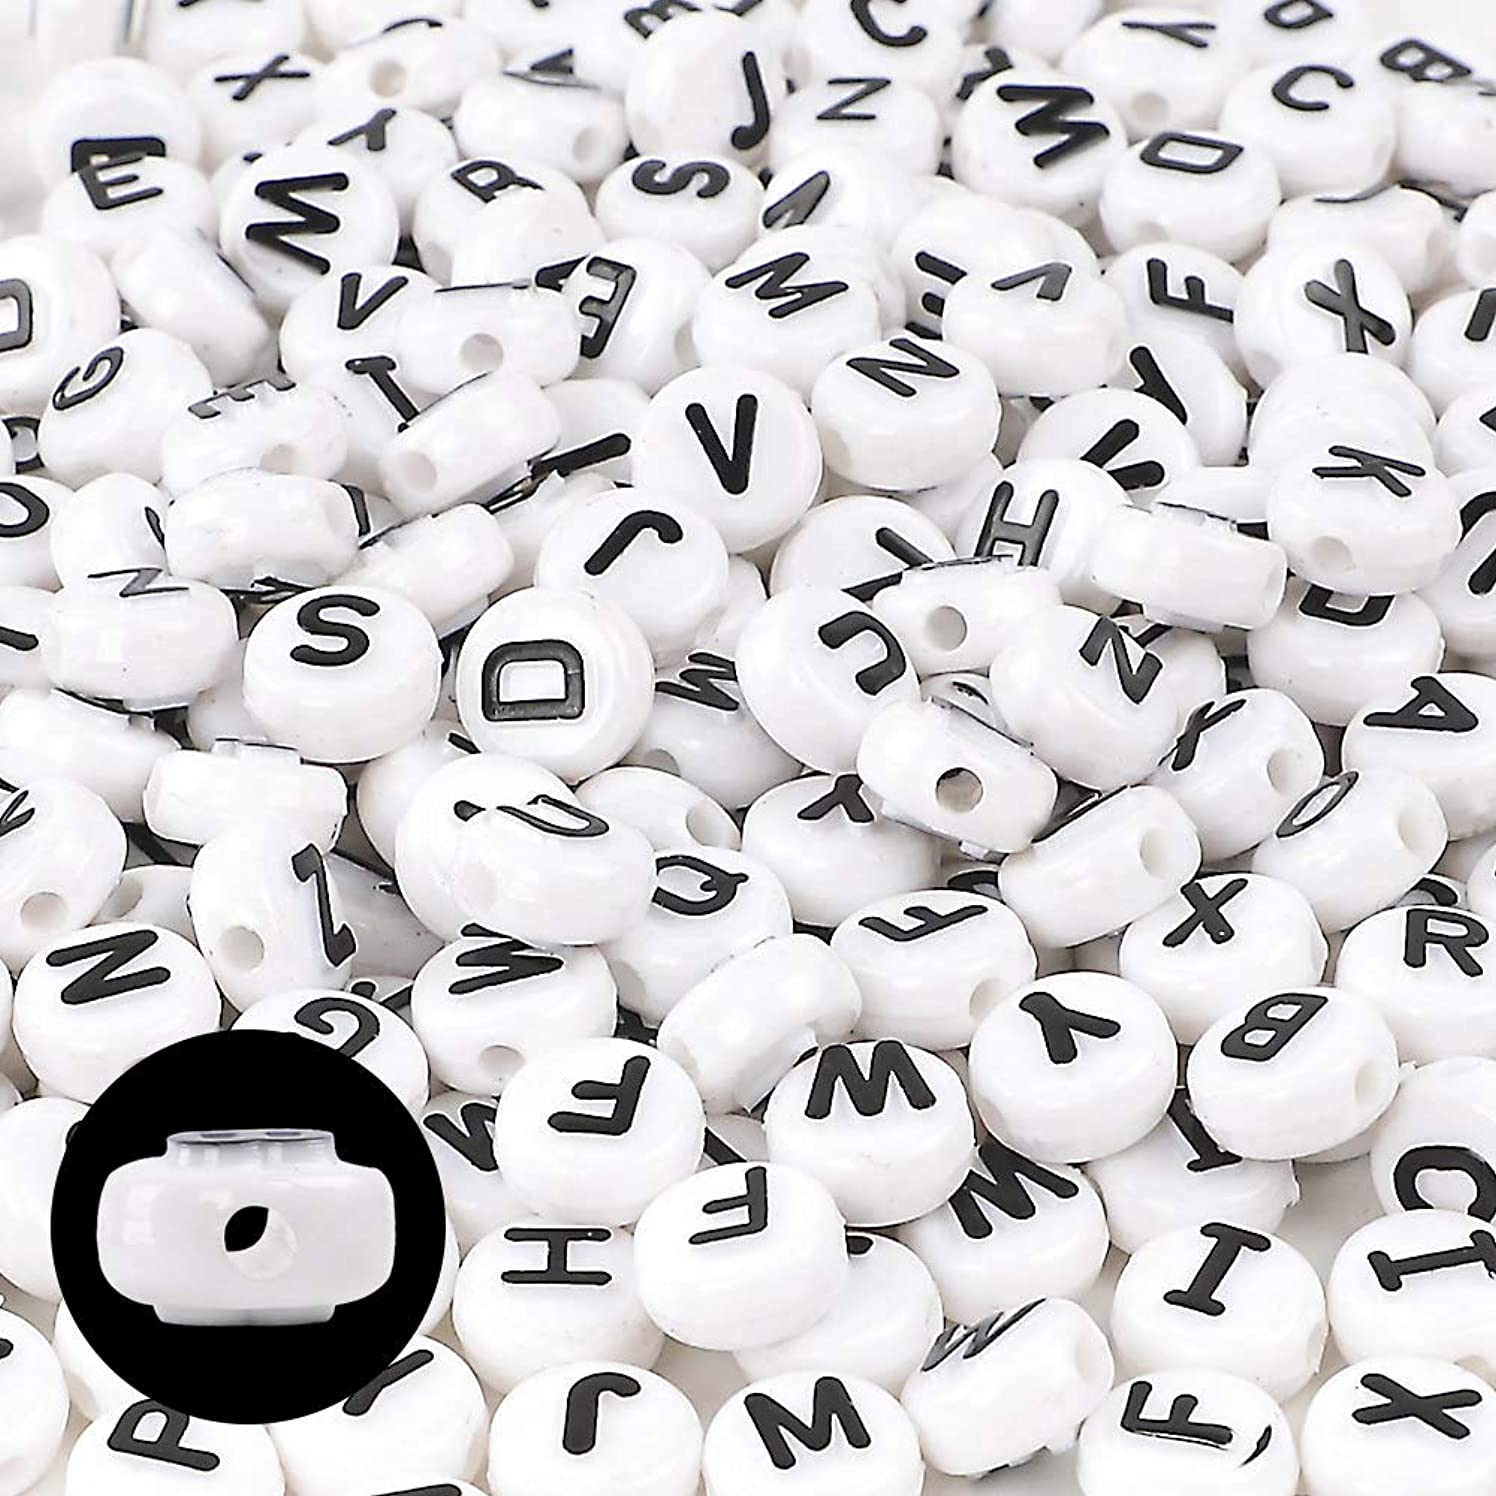 DICOBD 300pcs 10mm Letter Beads Acrylic White Alphabet Beads with Black Bulge Letters for Jewelry, Key Chain, Bracelet and Necklace Making